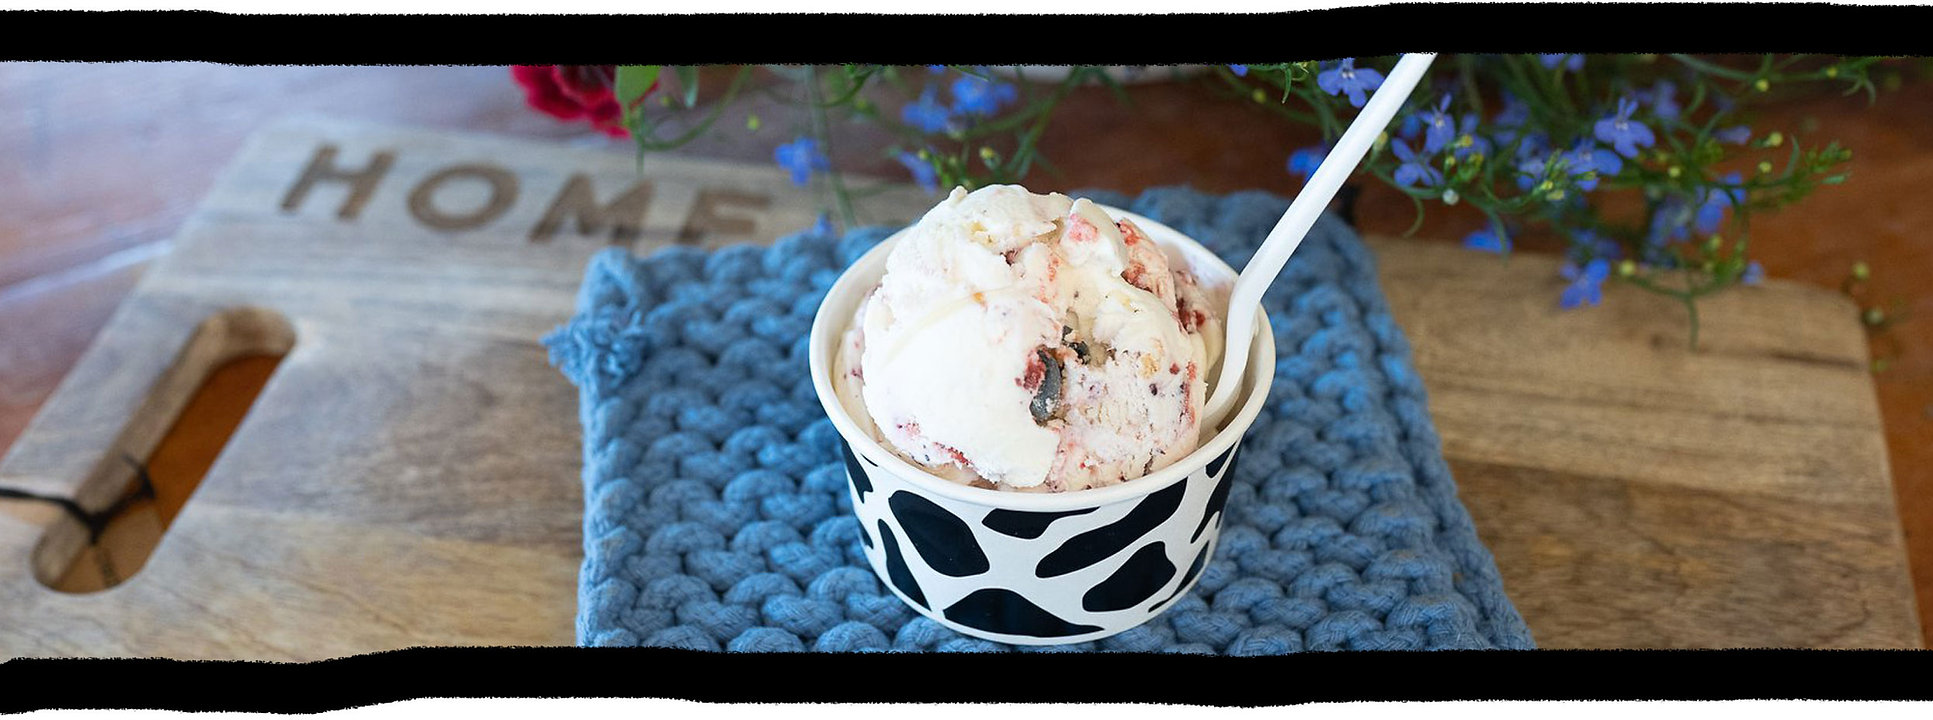 andersen-farms-ice-cream.jpg